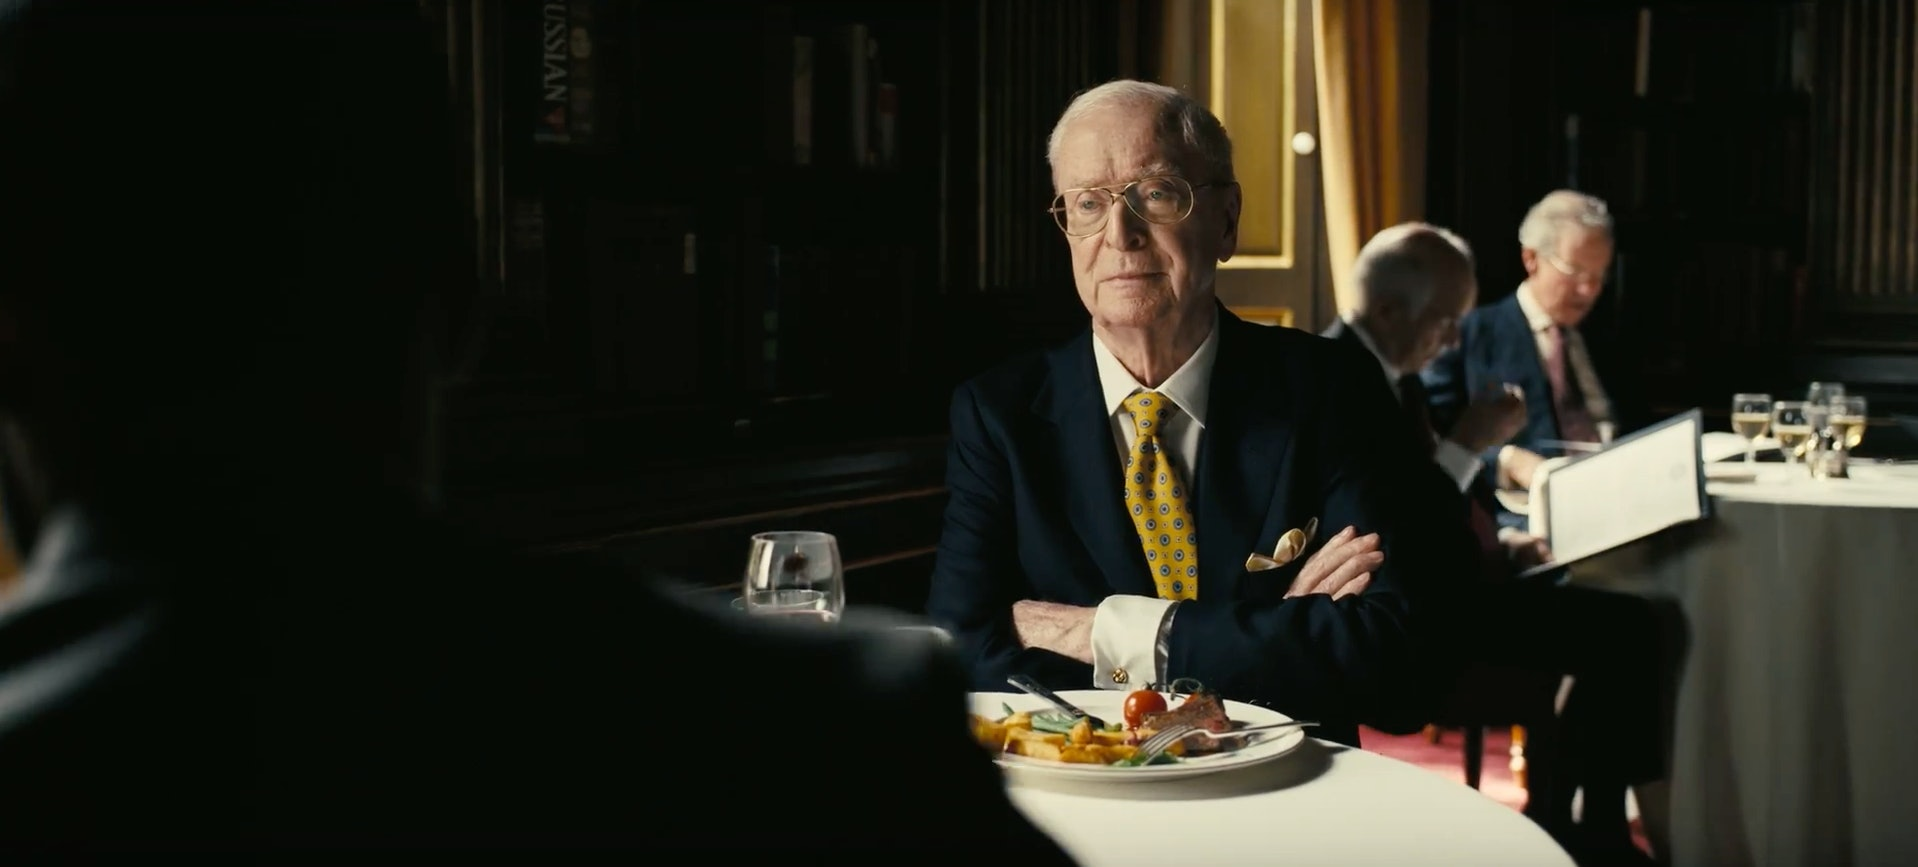 [Image: michael-caine-a-frequent-collaborator-of...crop=faces]